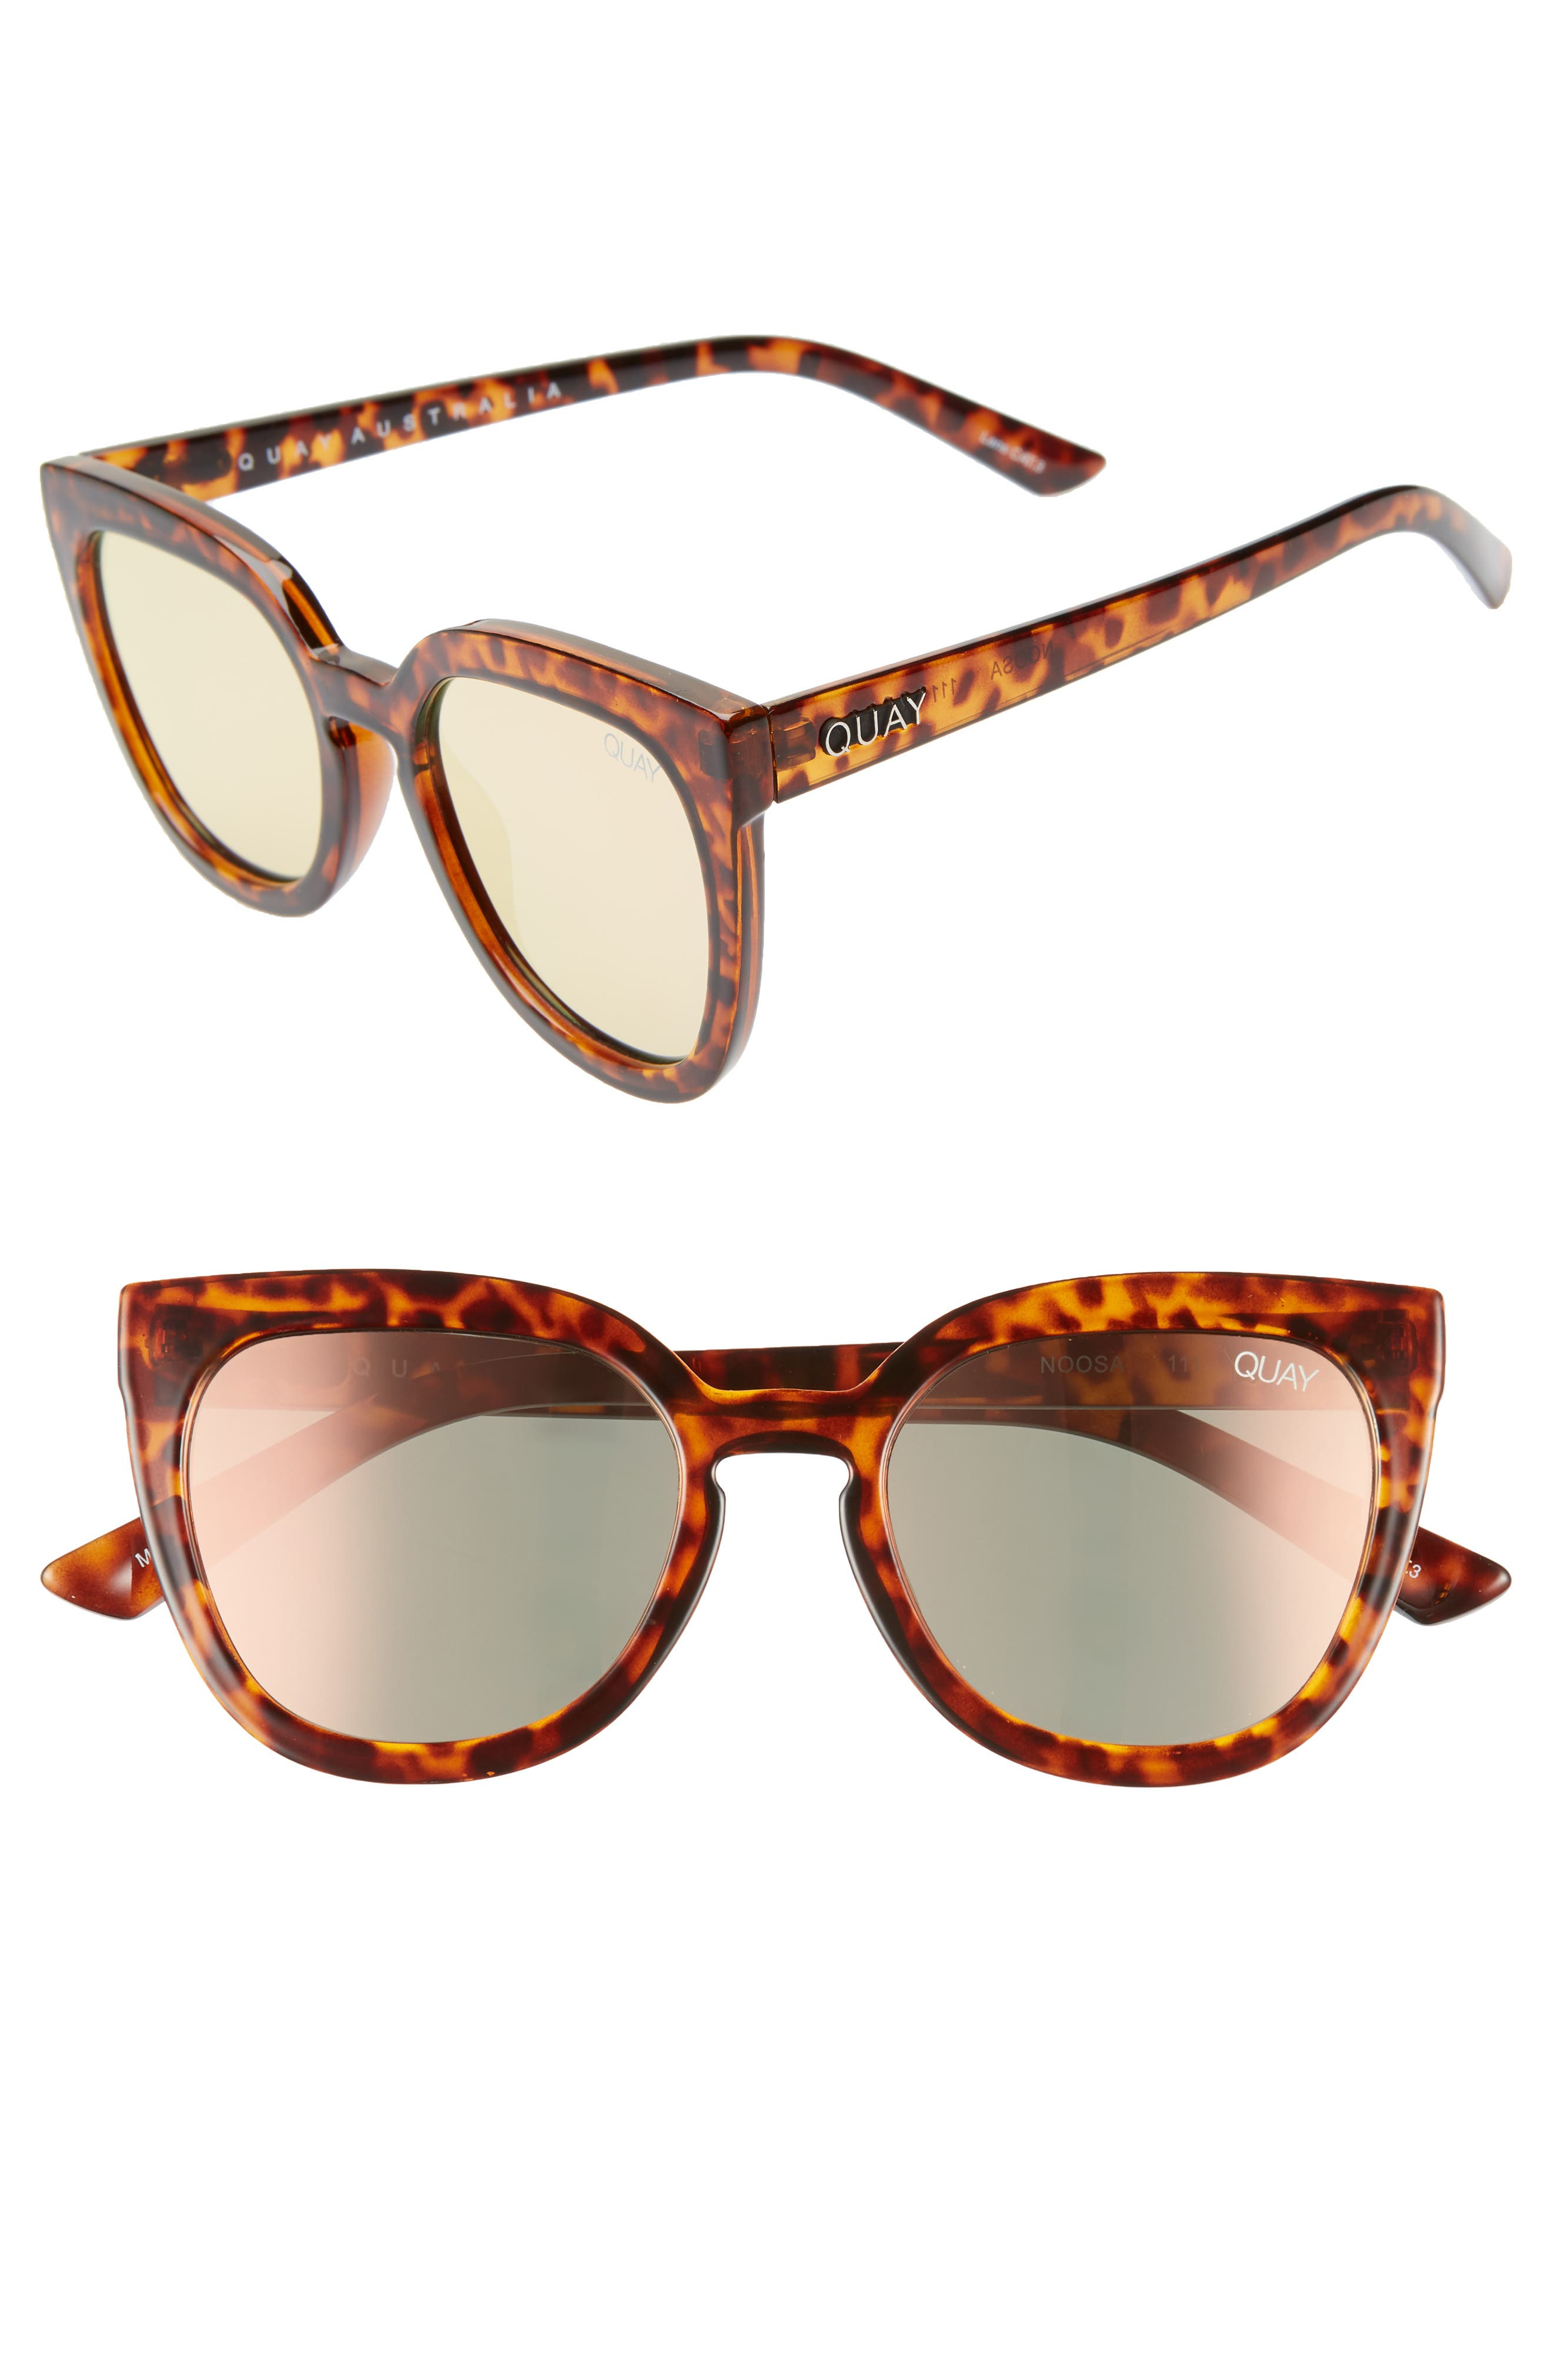 5e95951d1d Quay Australia Sunglasses for Women